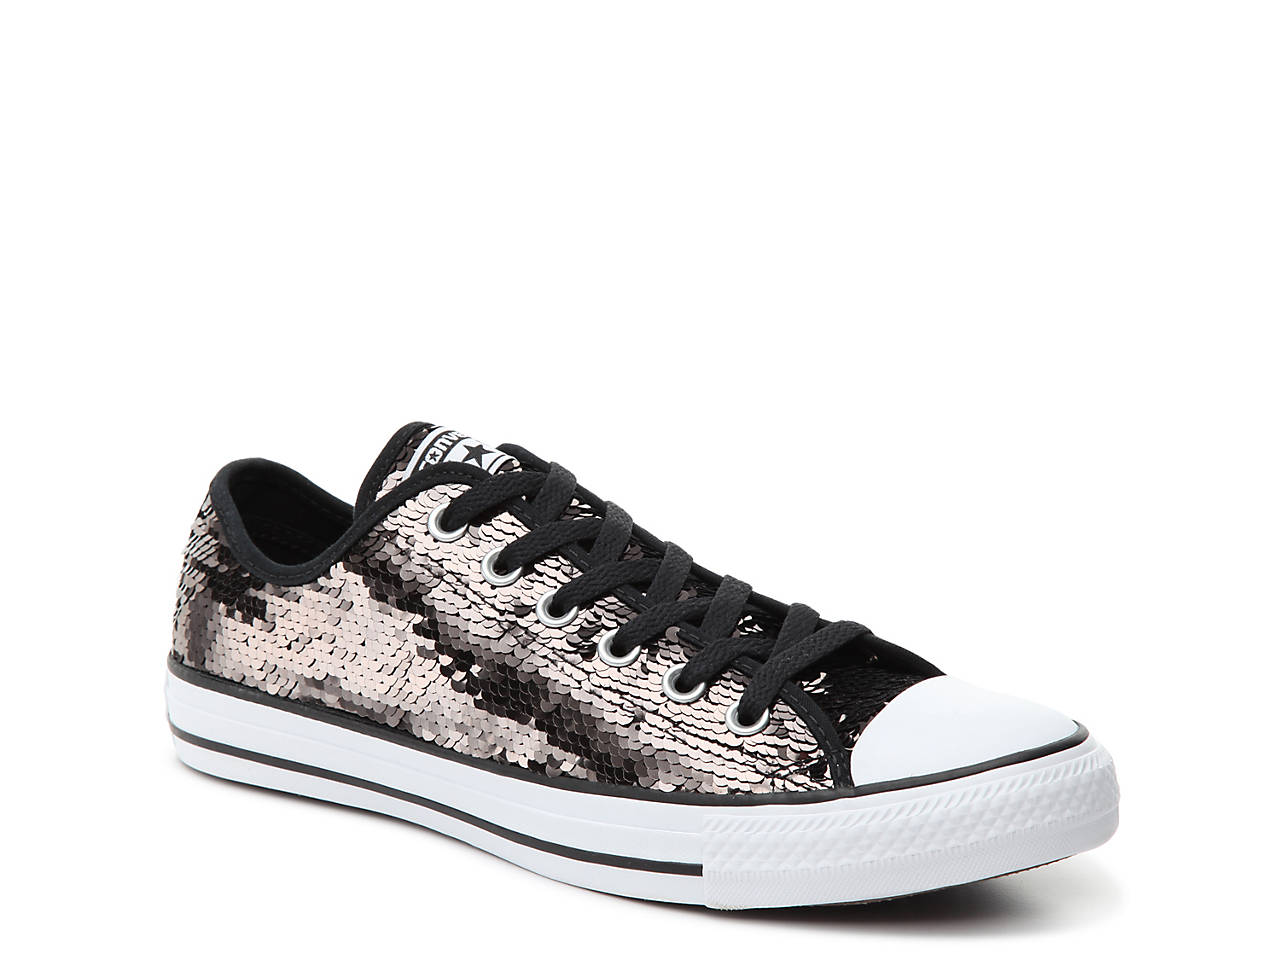 Taylor Sequins Star Converse Women's All Sneaker Women's Chuck oedBxCrW